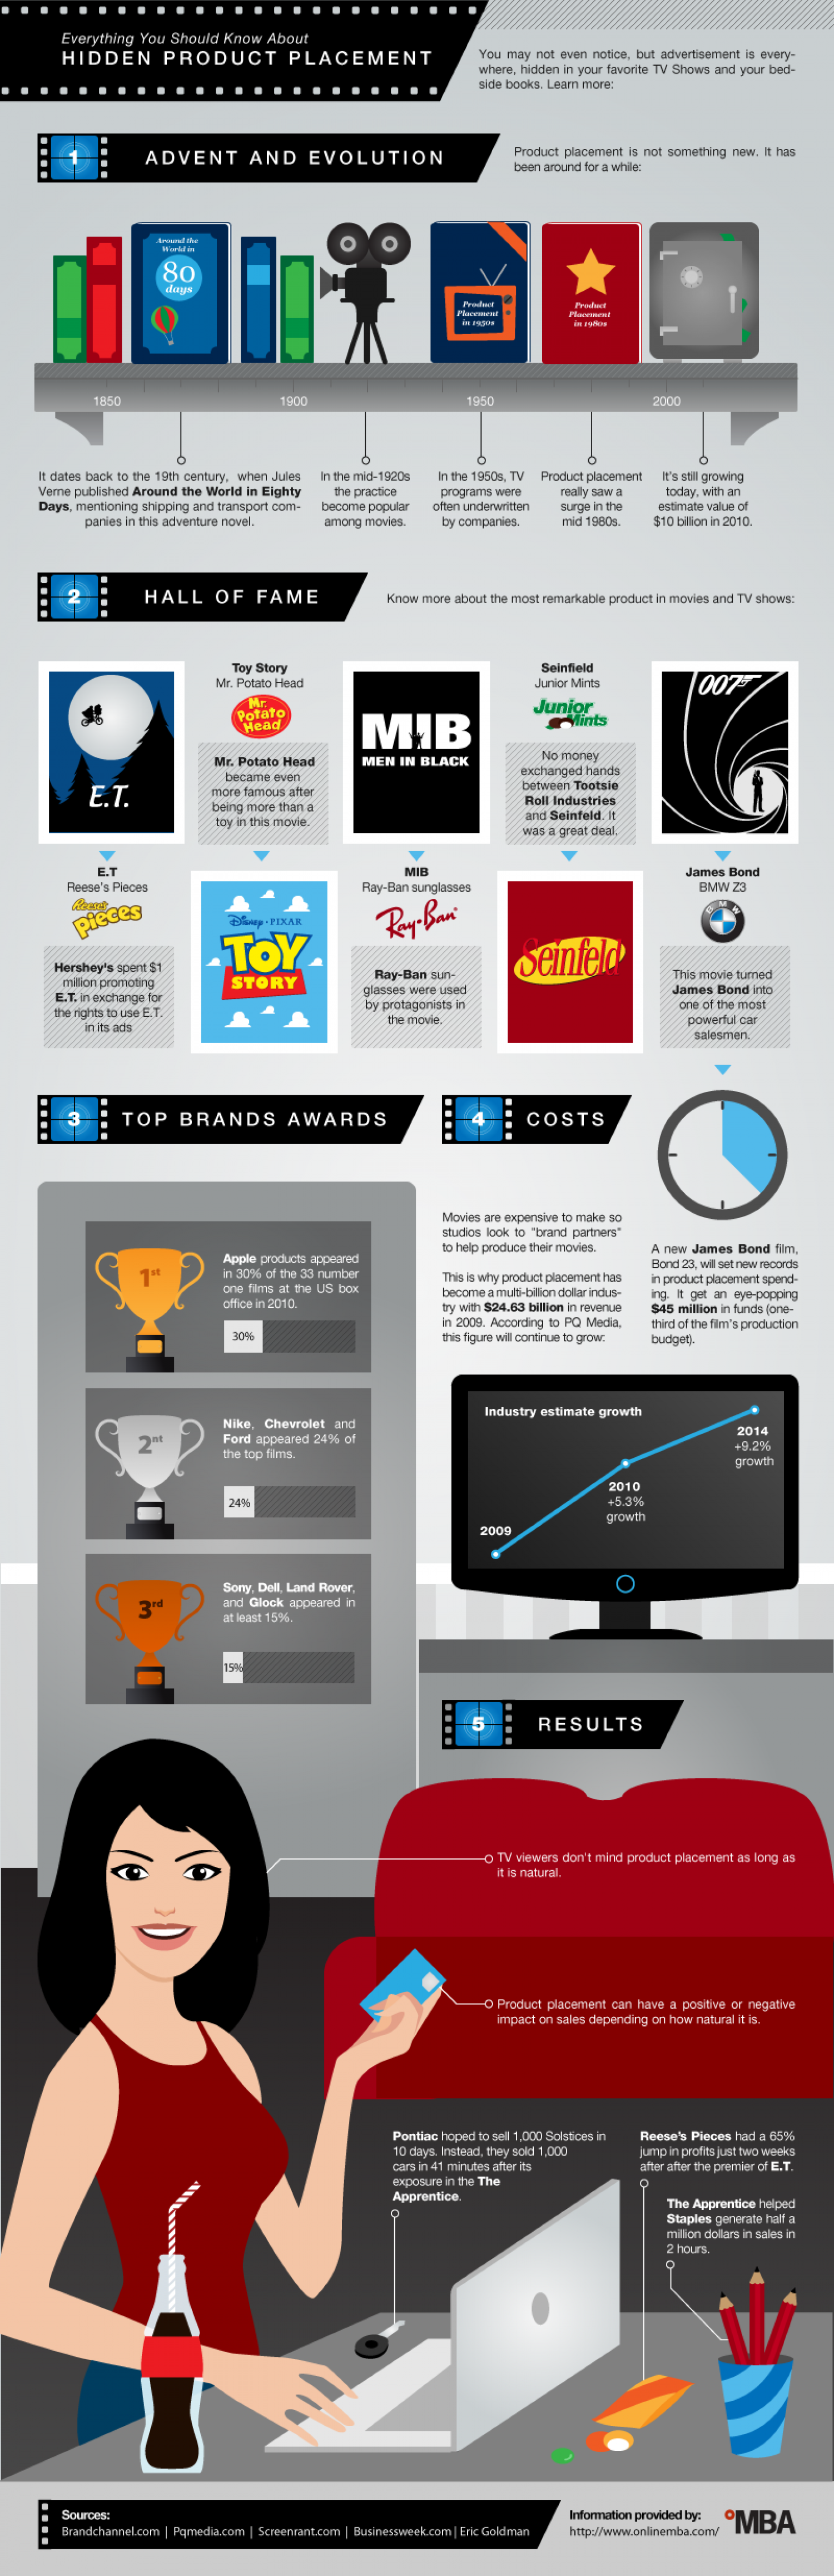 Everything You Should Know About Hidden Product Placement  Infographic